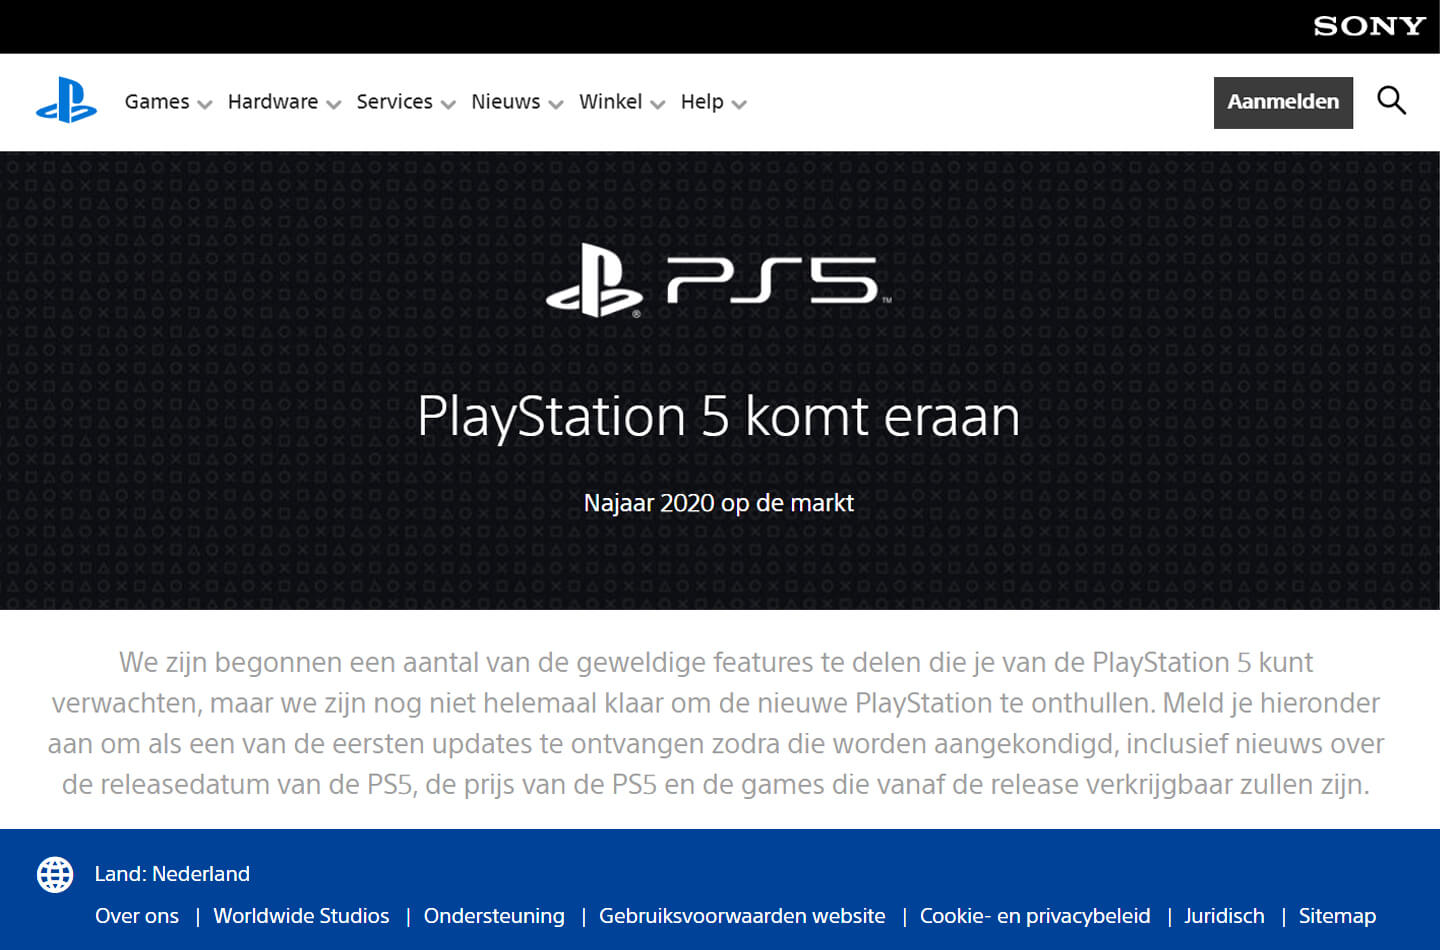 Sony Playstation 5 website